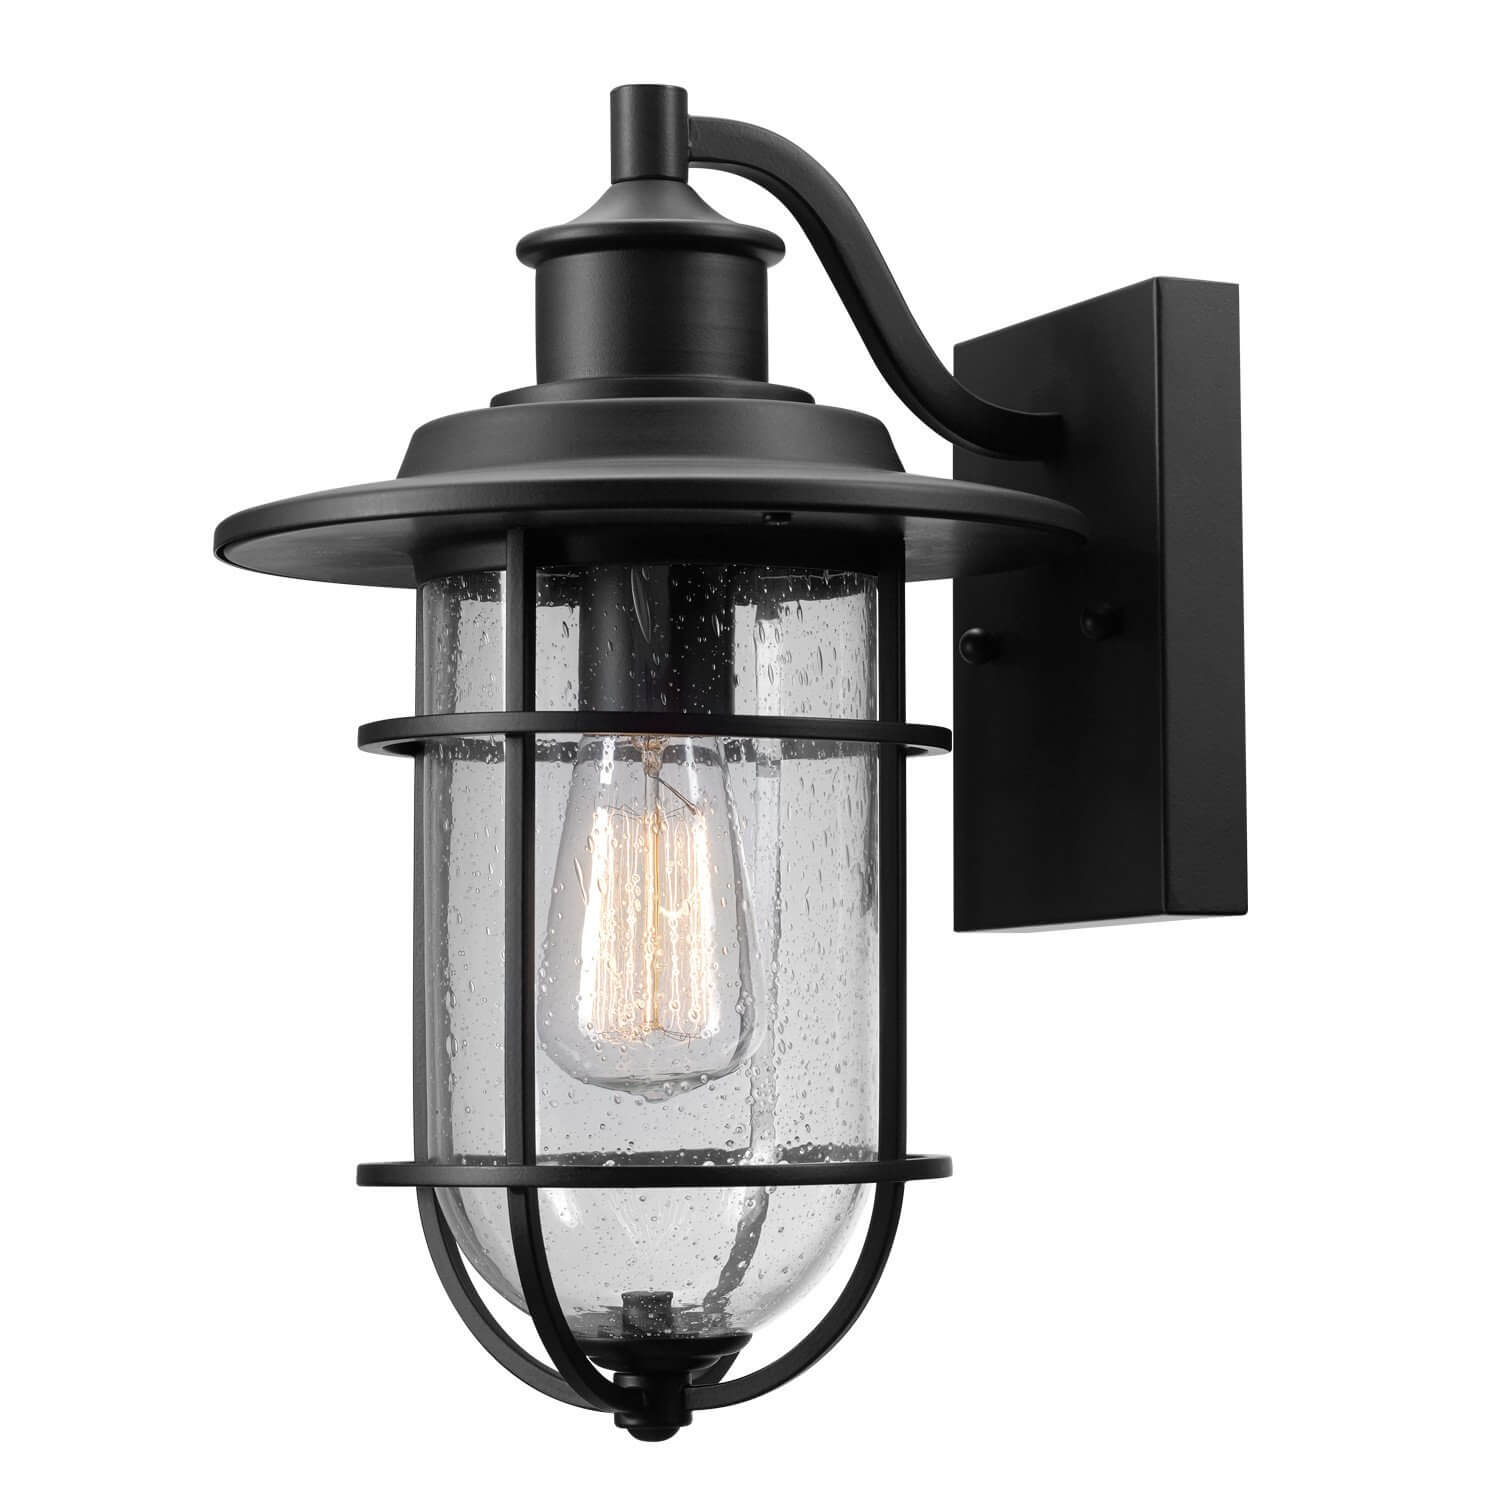 GLOBE ELECTRIC WALL SCONCE FOR OUTDOOR GARAGE LIGHTING